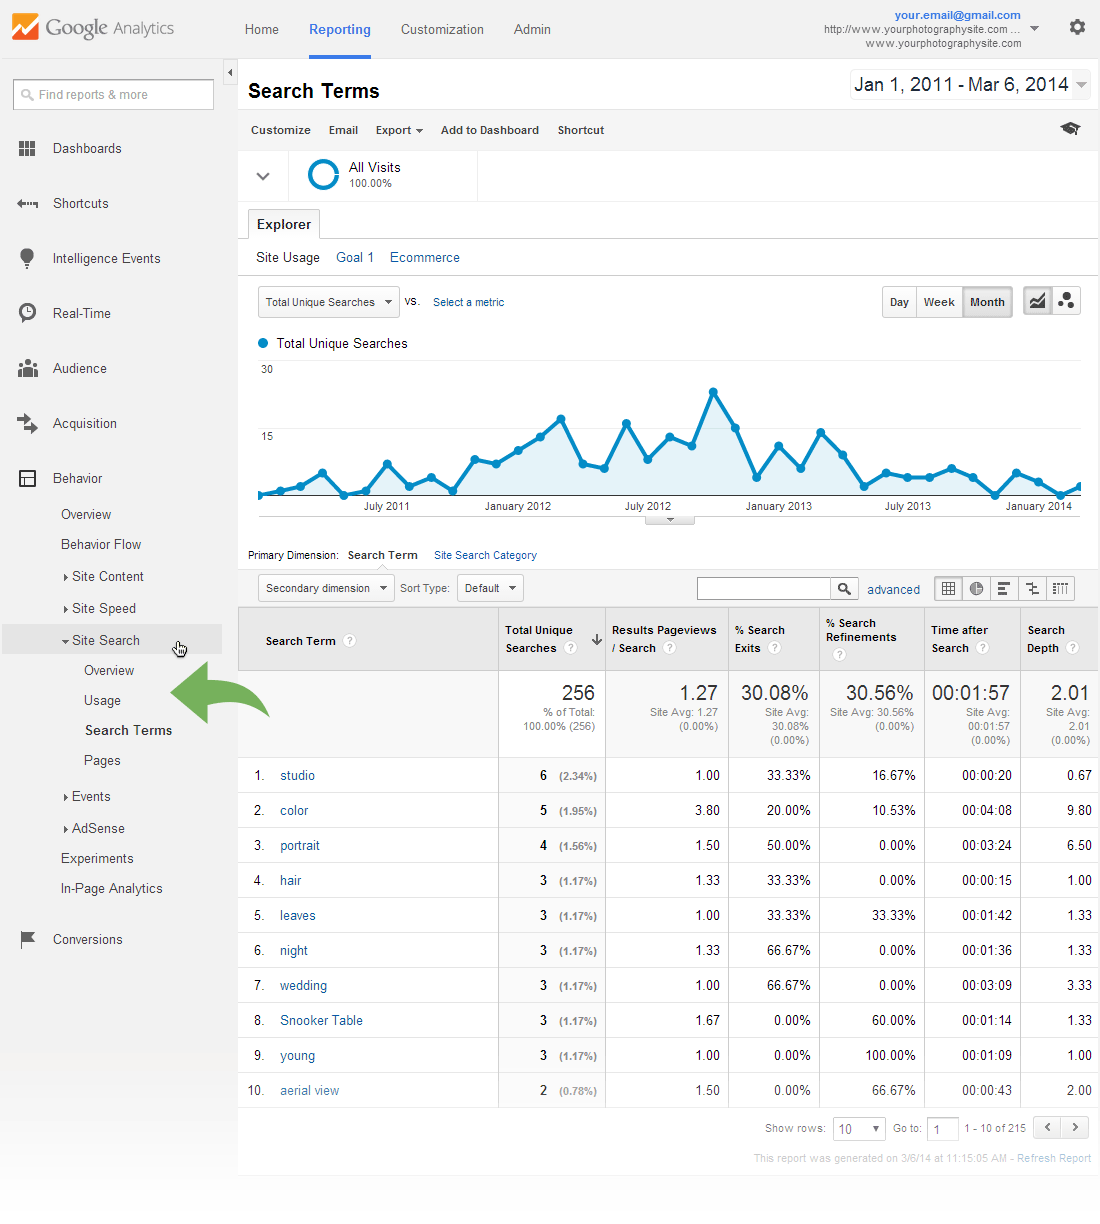 Google Analytics Site Search report - Search Terms